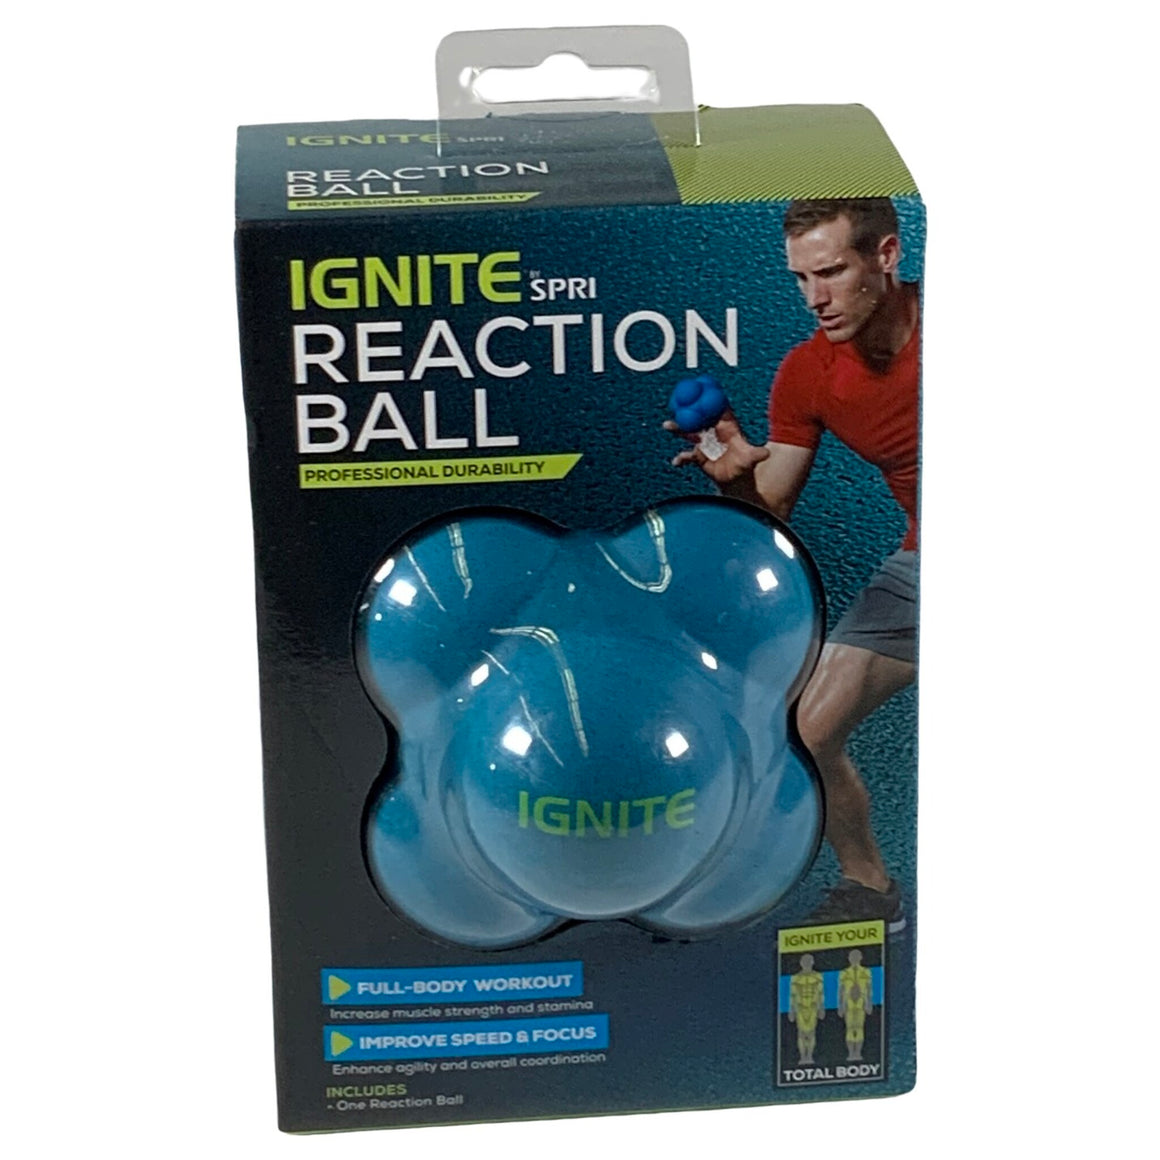 Ignite By Spri Reaction Ball -